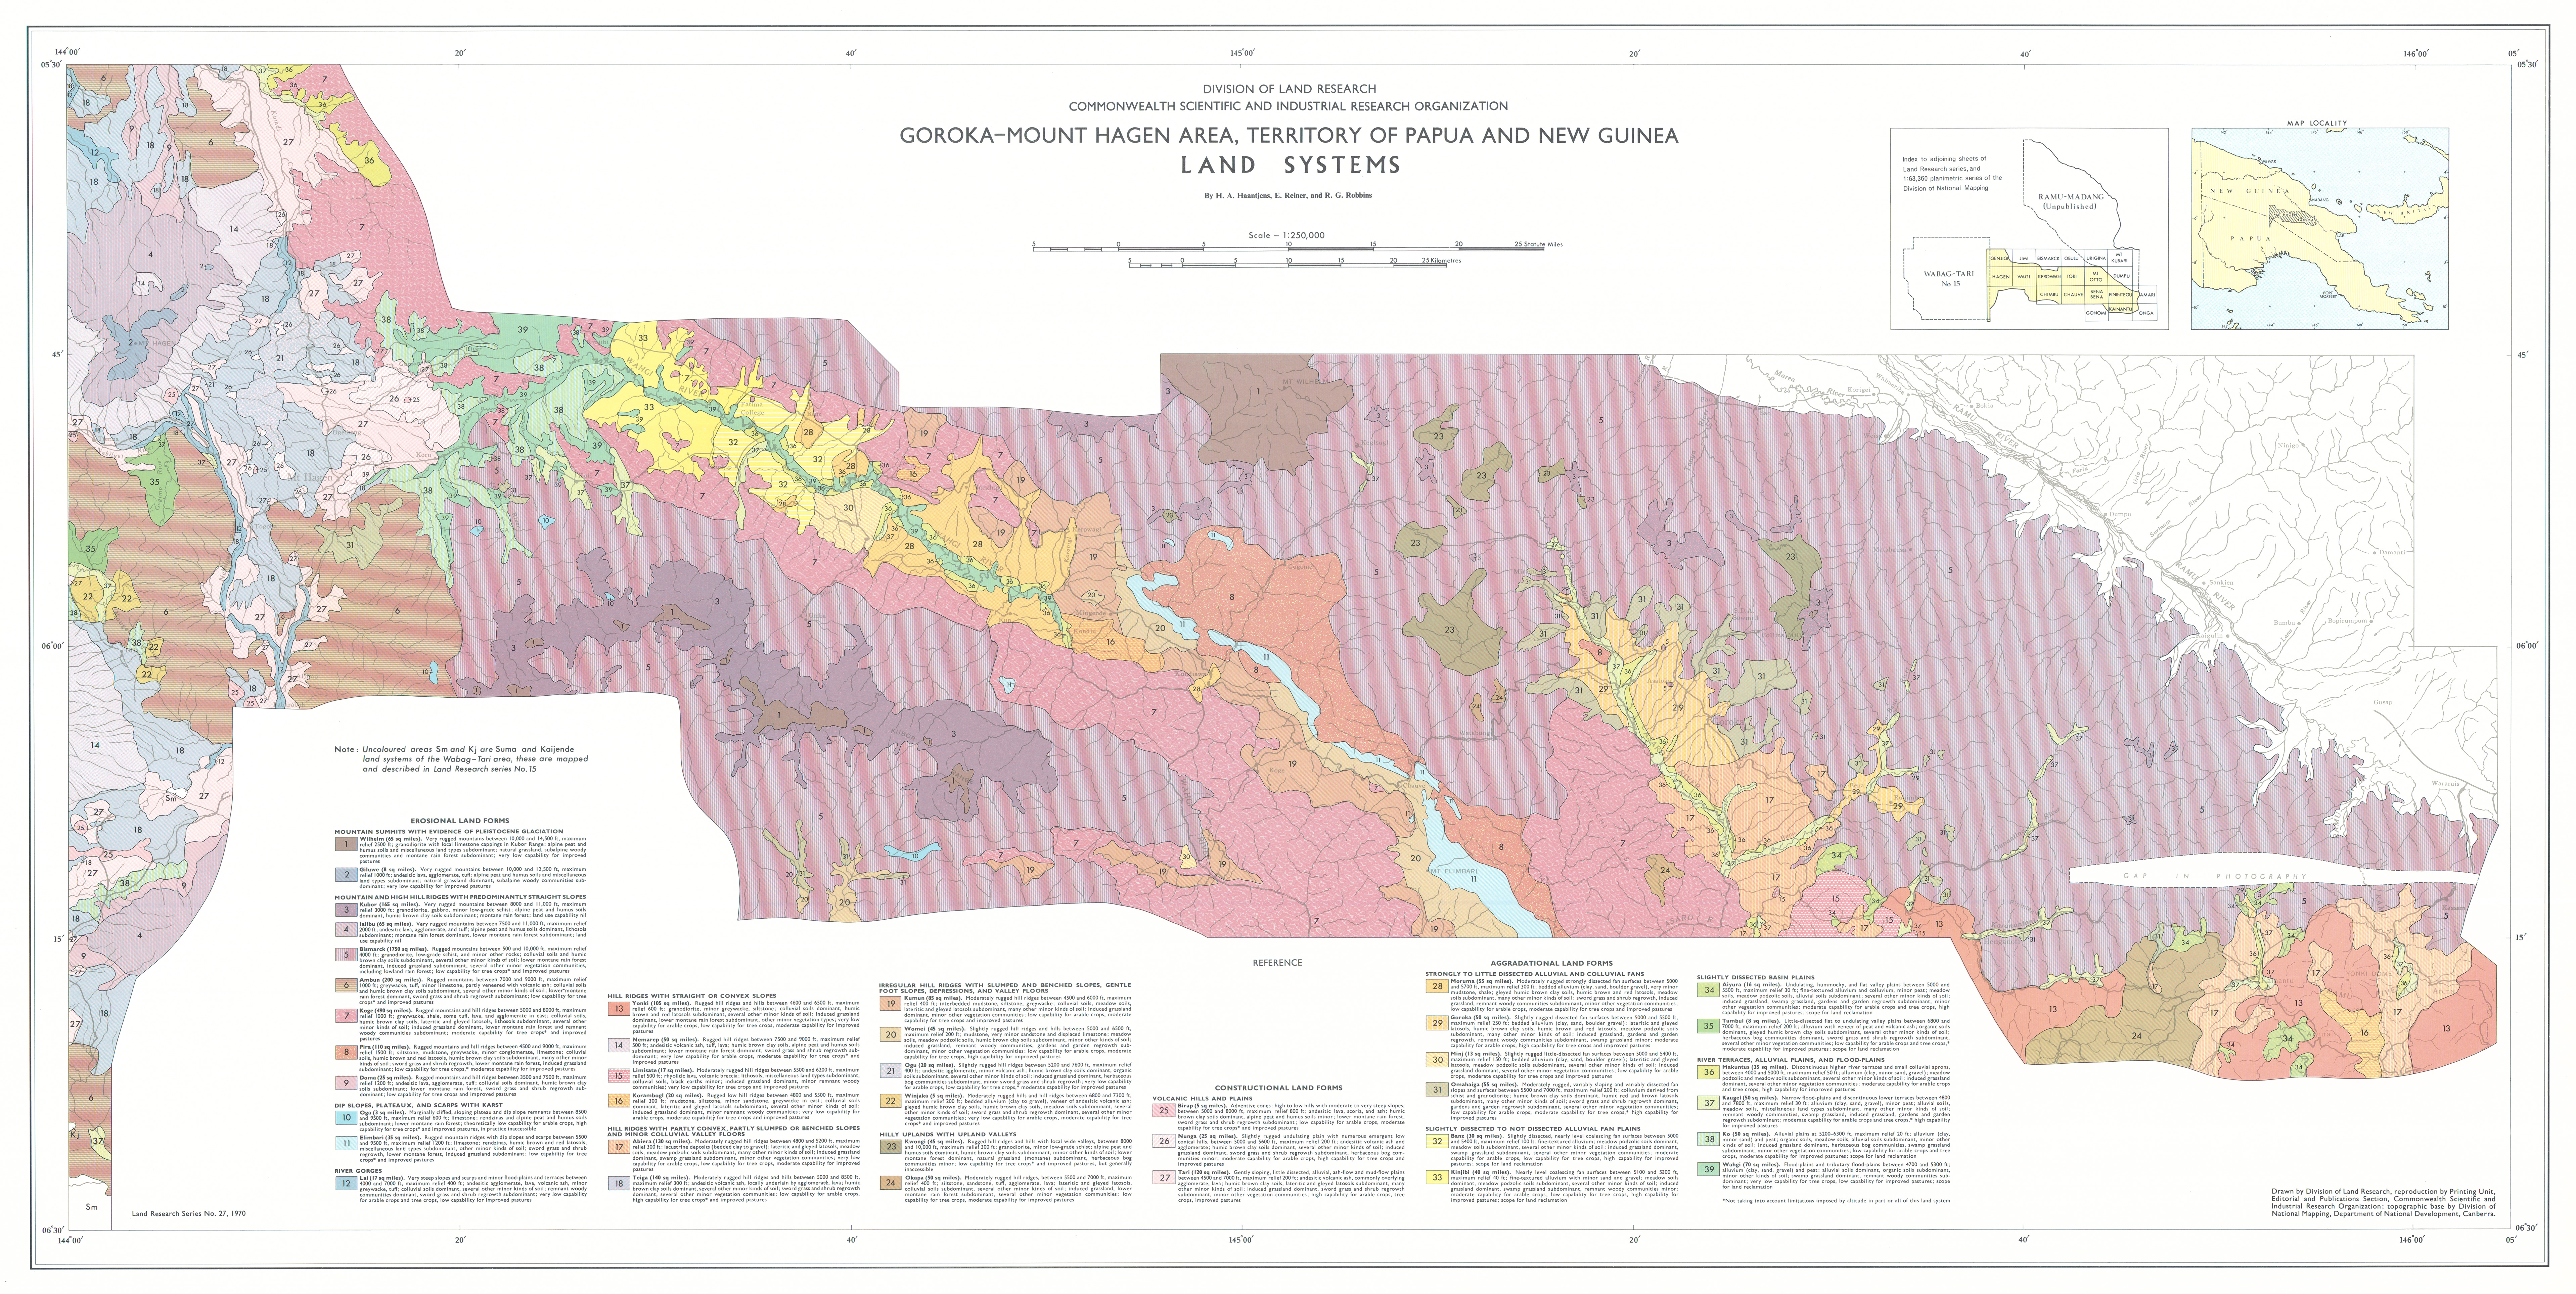 Csiro publishing csiro land research surveys map 1 land systems of the gorokamount hagen area territory of papua and new guinea by ha haantjens e reiner and rg robbins scale 1250000 sciox Image collections